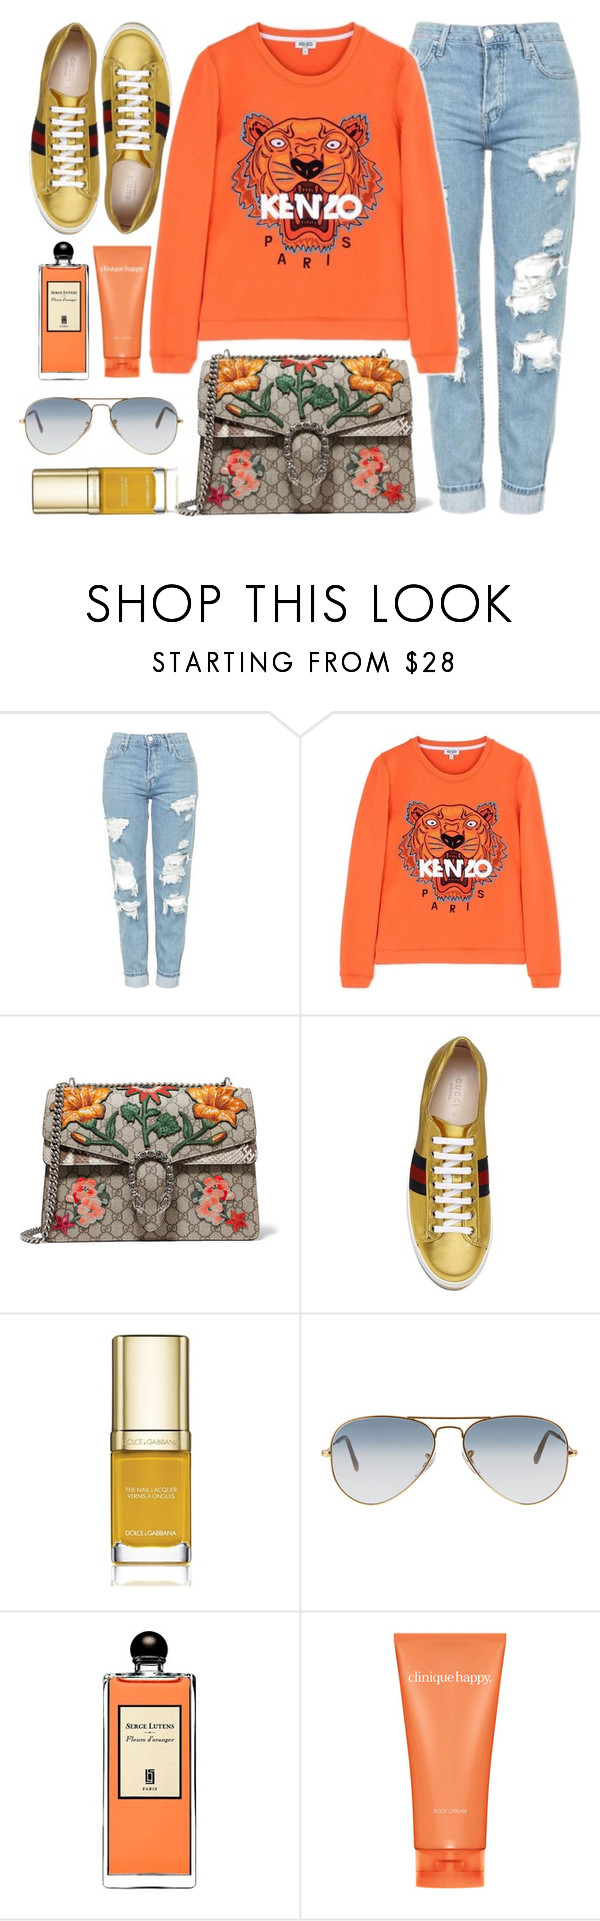 """""""Colorful"""" by monmondefou ❤ liked on Polyvore featuring Topshop, Kenzo, Gucci, Dolce&Gabbana, Ray-Ban, Serge Lutens, Clinique, casual, kenzo and orange"""